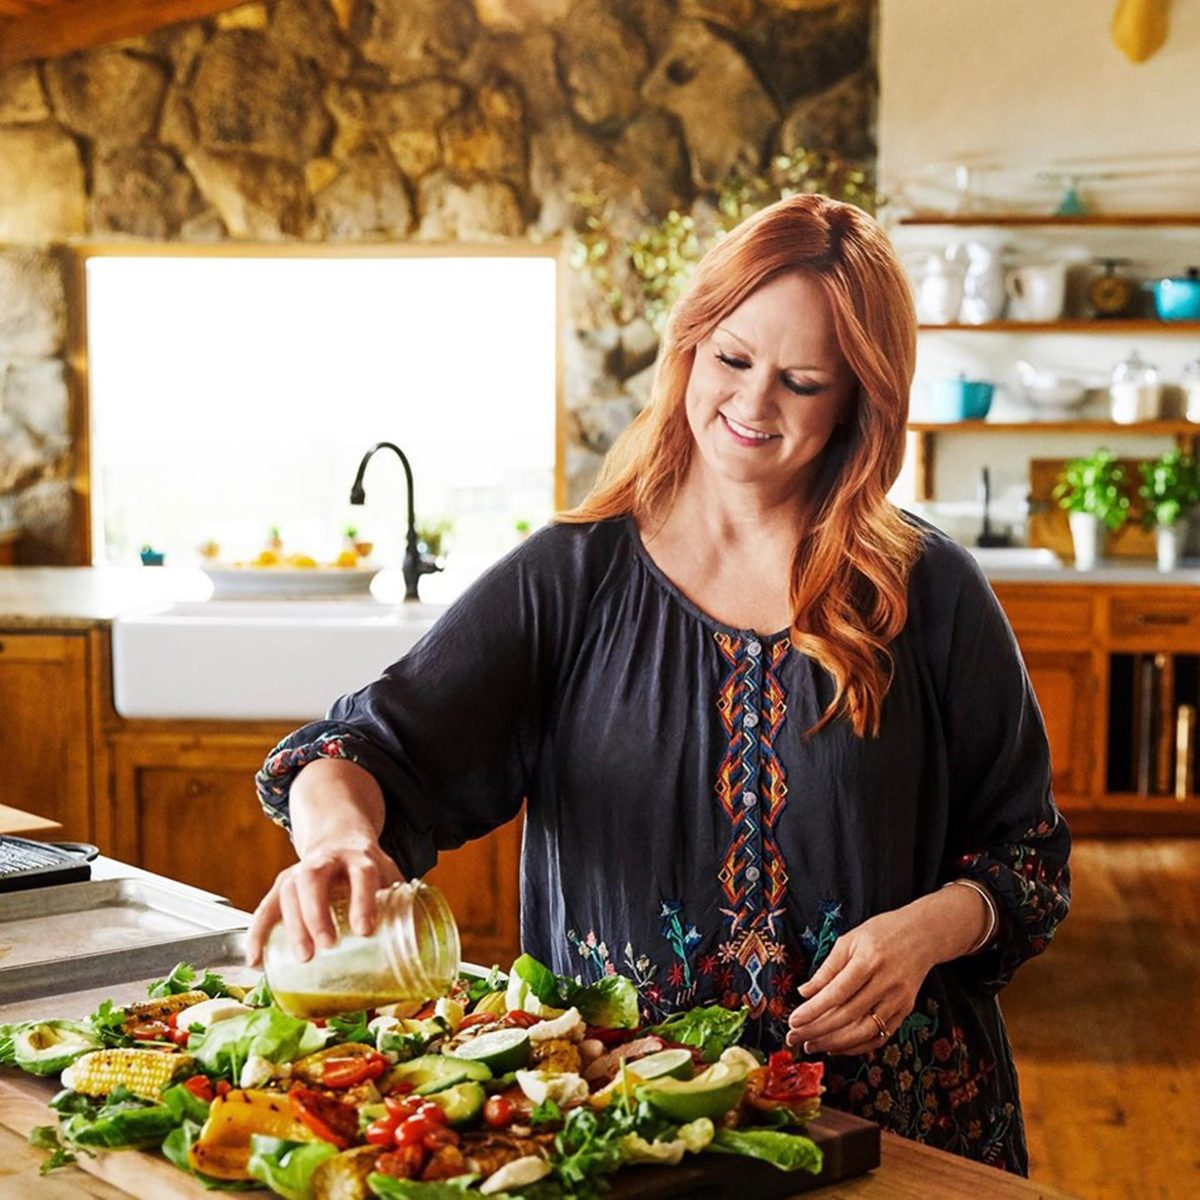 This Is Ree Drummond's Favorite Childhood Meal